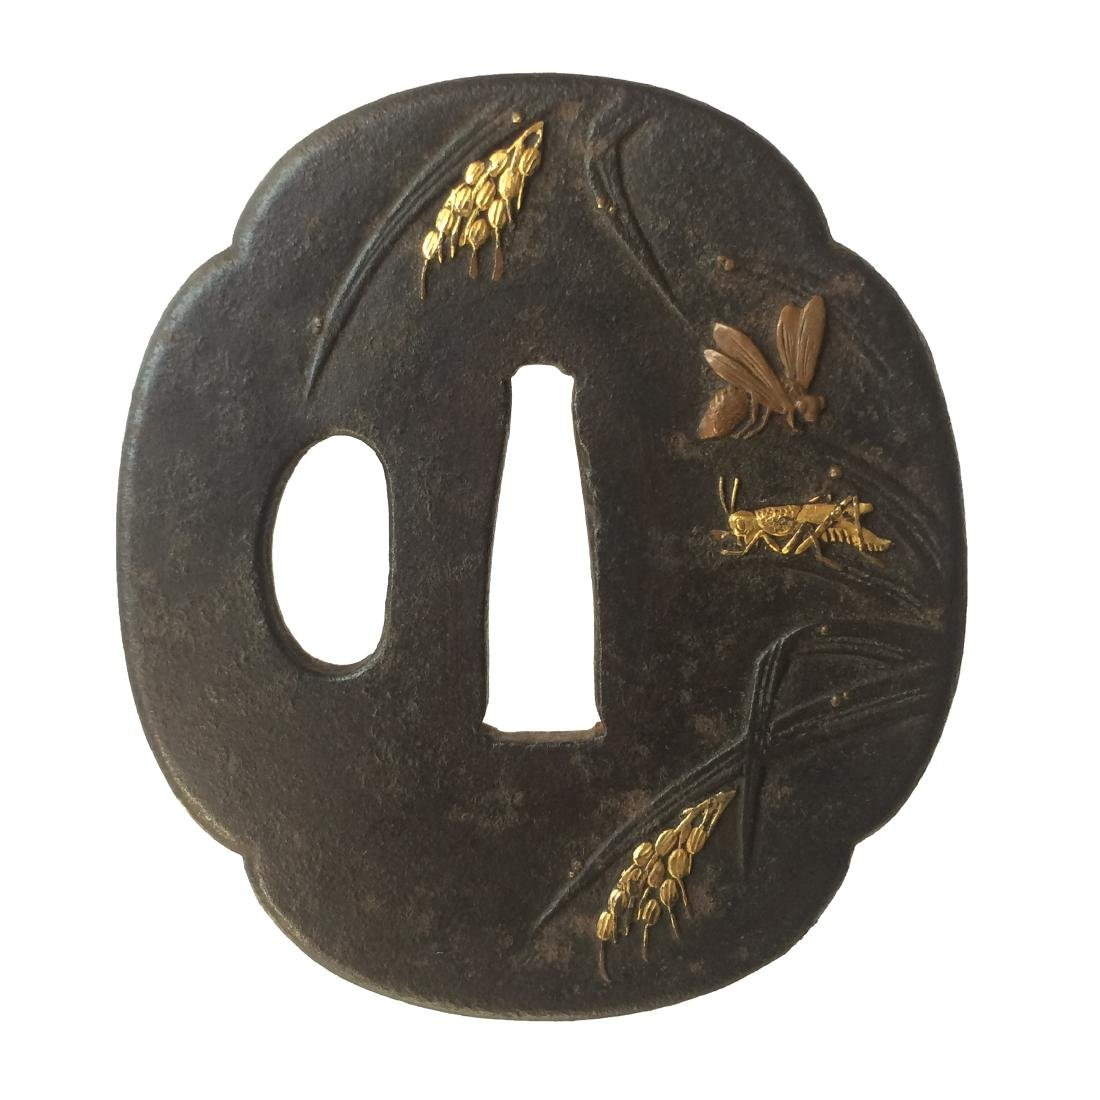 Iron tsuba inlaid with spikes and insects